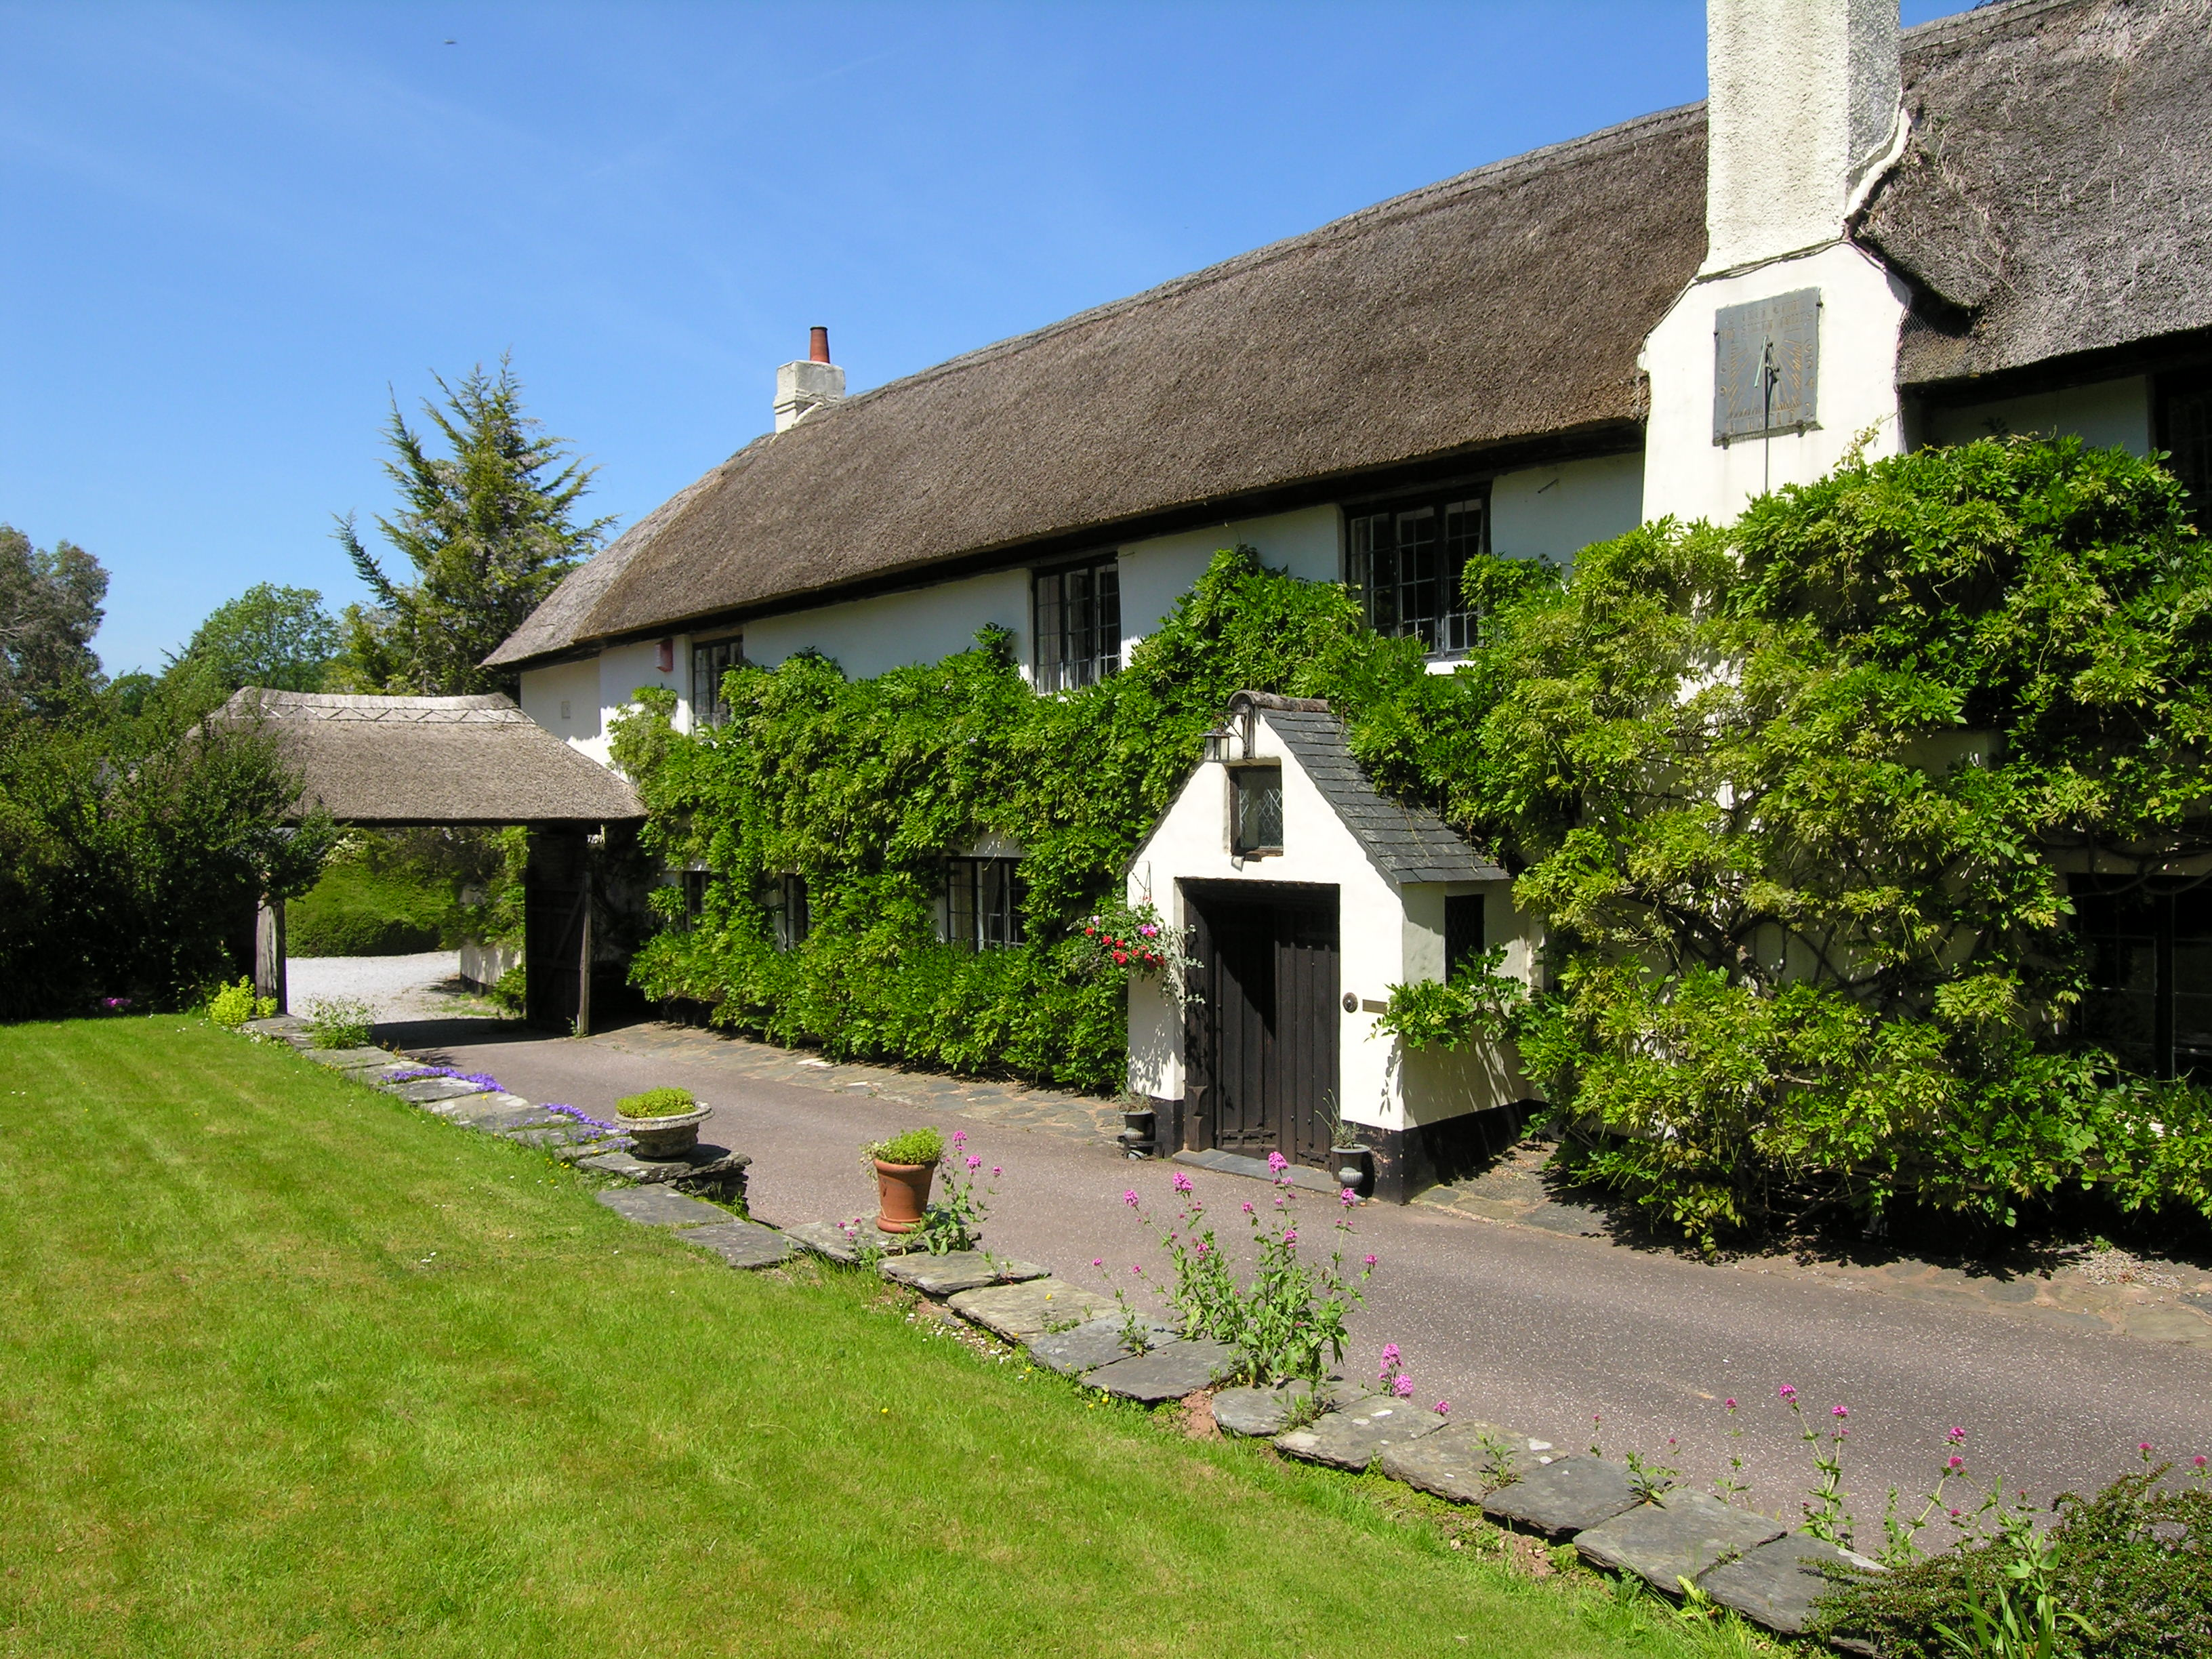 Duddings Country Cottages